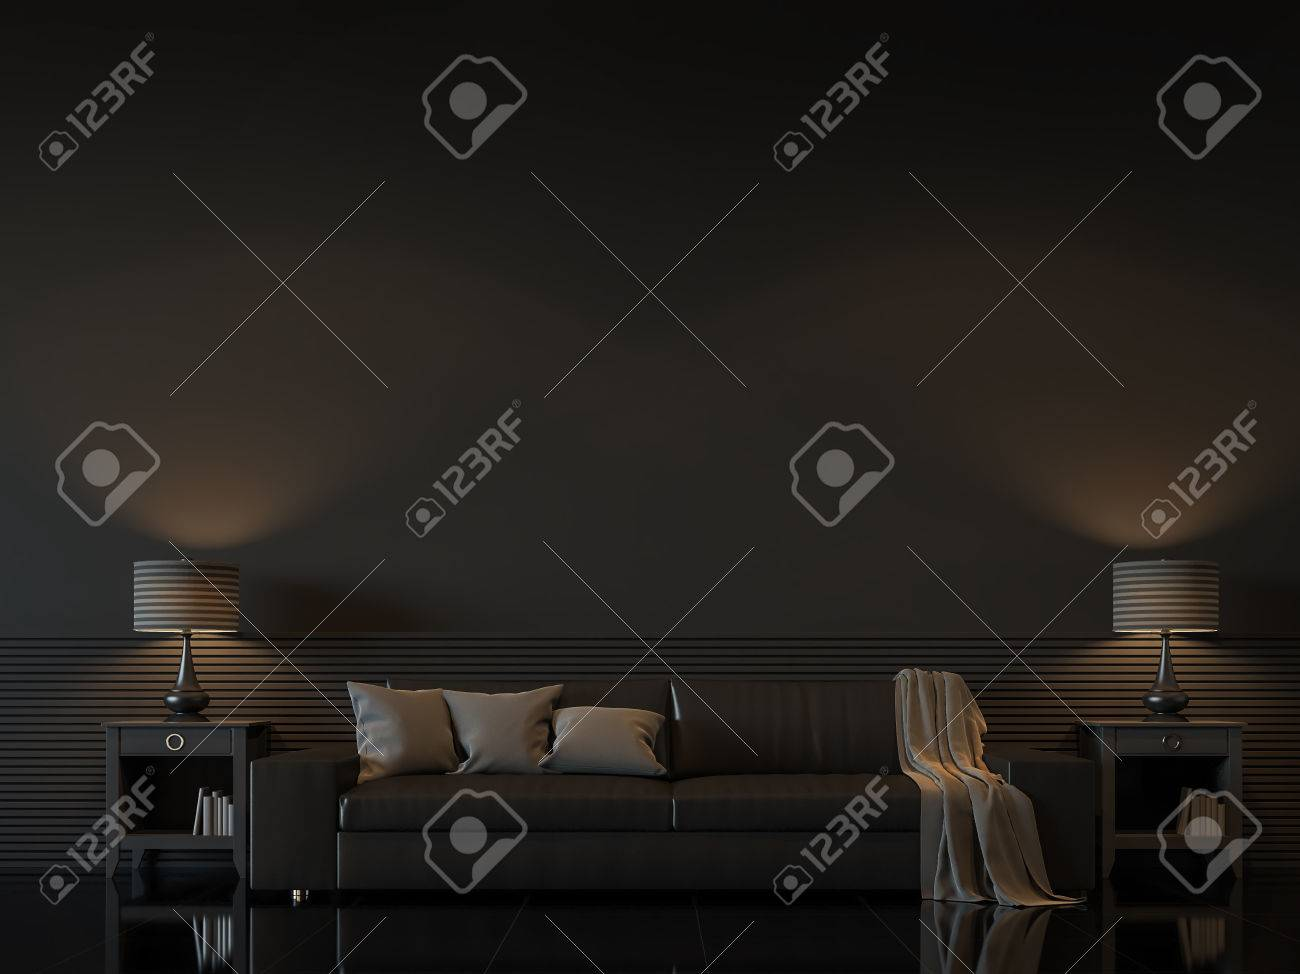 Modern living room interior with empty black wall 3d rendering image.There are minimalist style decorate room with black furniture,floor,wall - 73535794